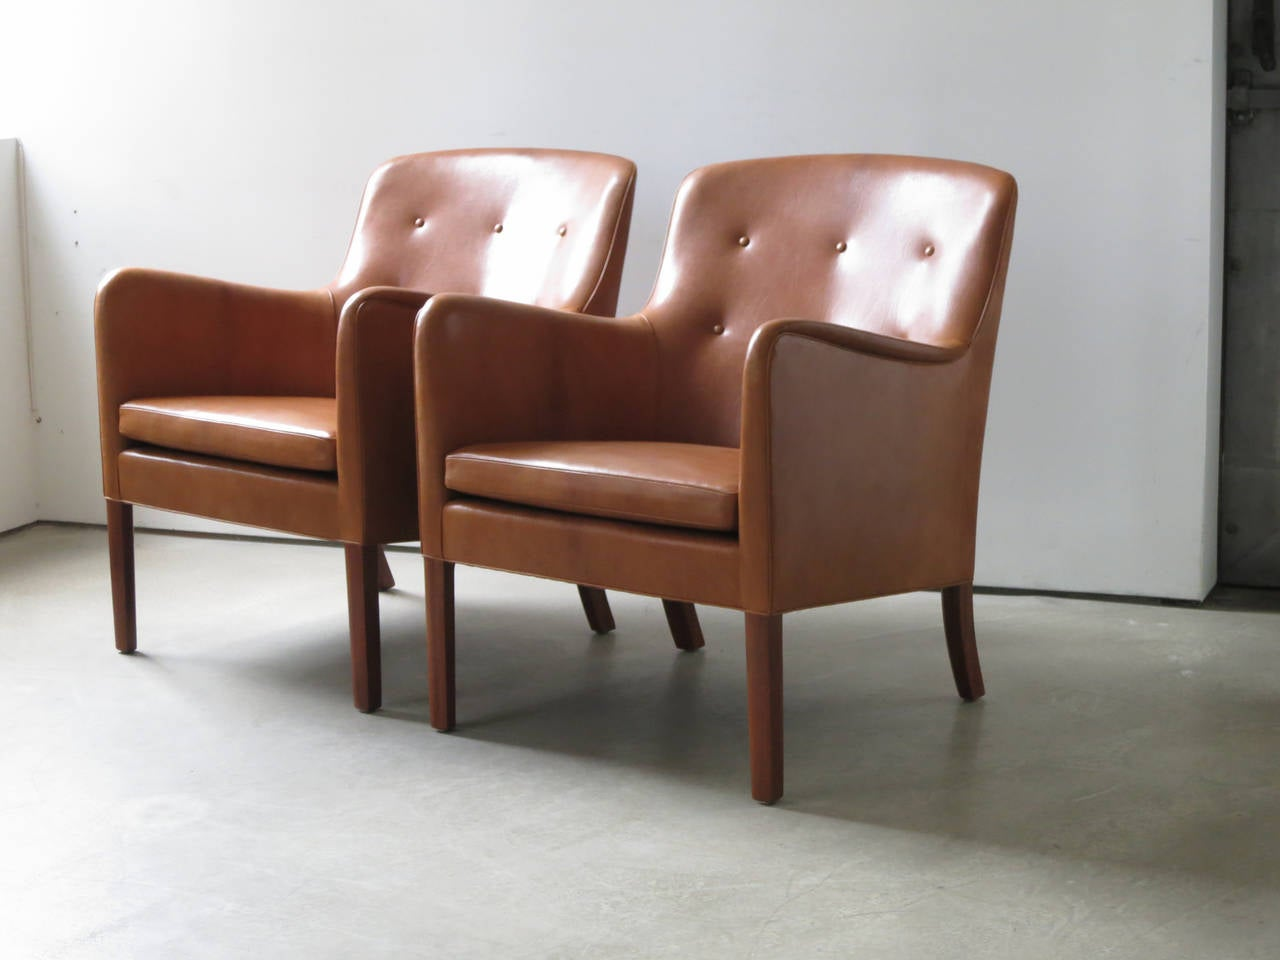 Mid-20th Century Pair of 1940s Lounge Chairs in Nigerian Leather by Ole Wanscher